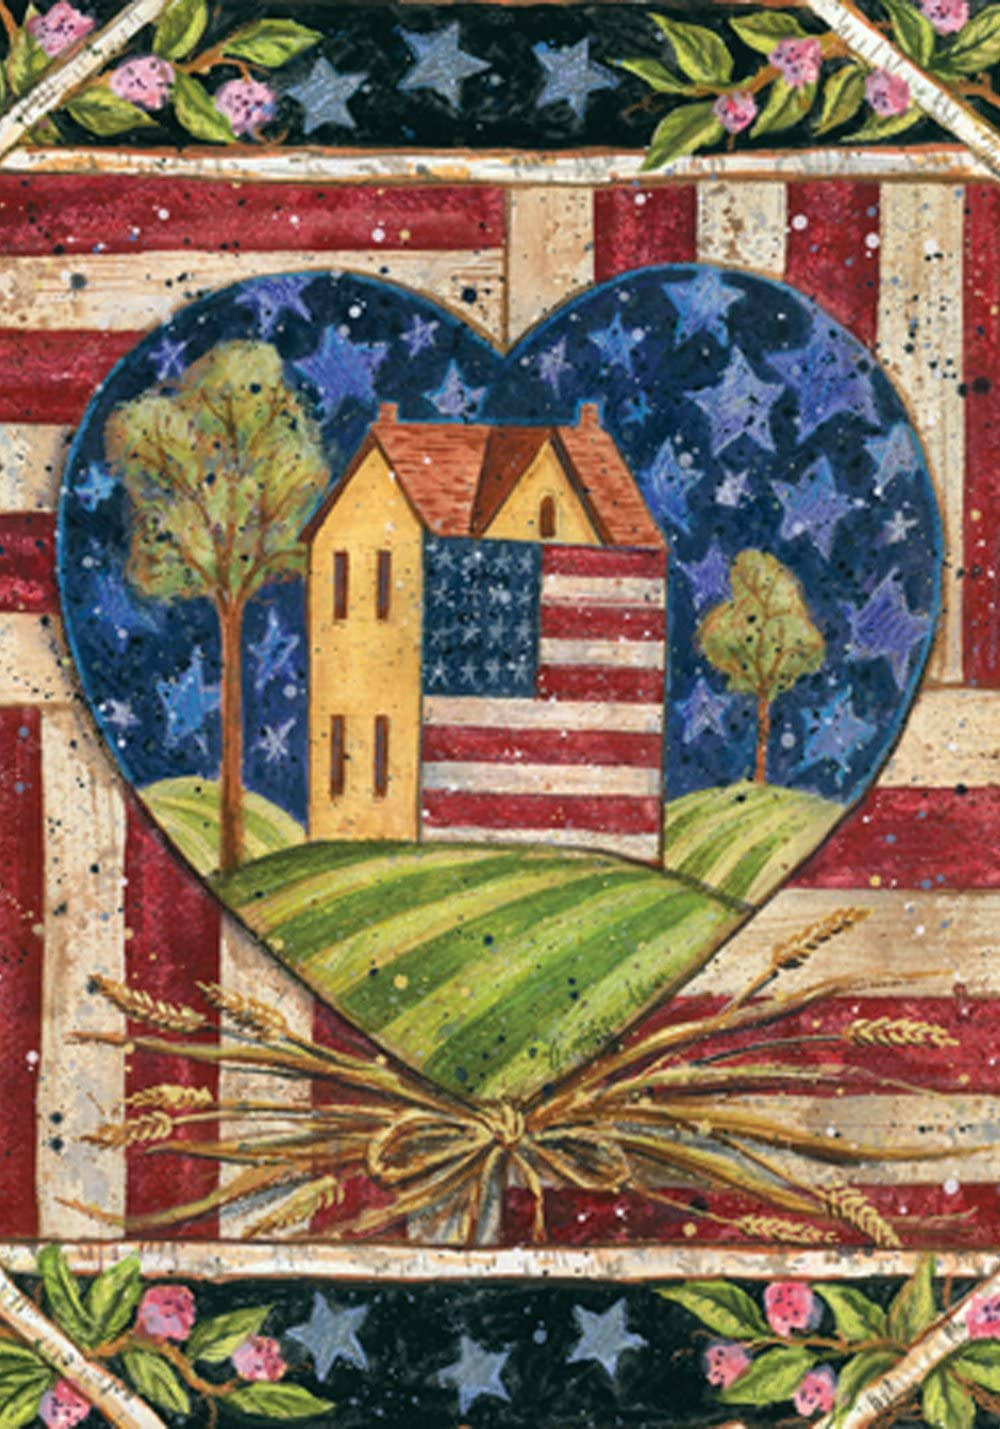 Toland Home Garden American Folk Heart 28 x 40 Inch Decorative Rustic Patriotic Americana July 4 House Flag